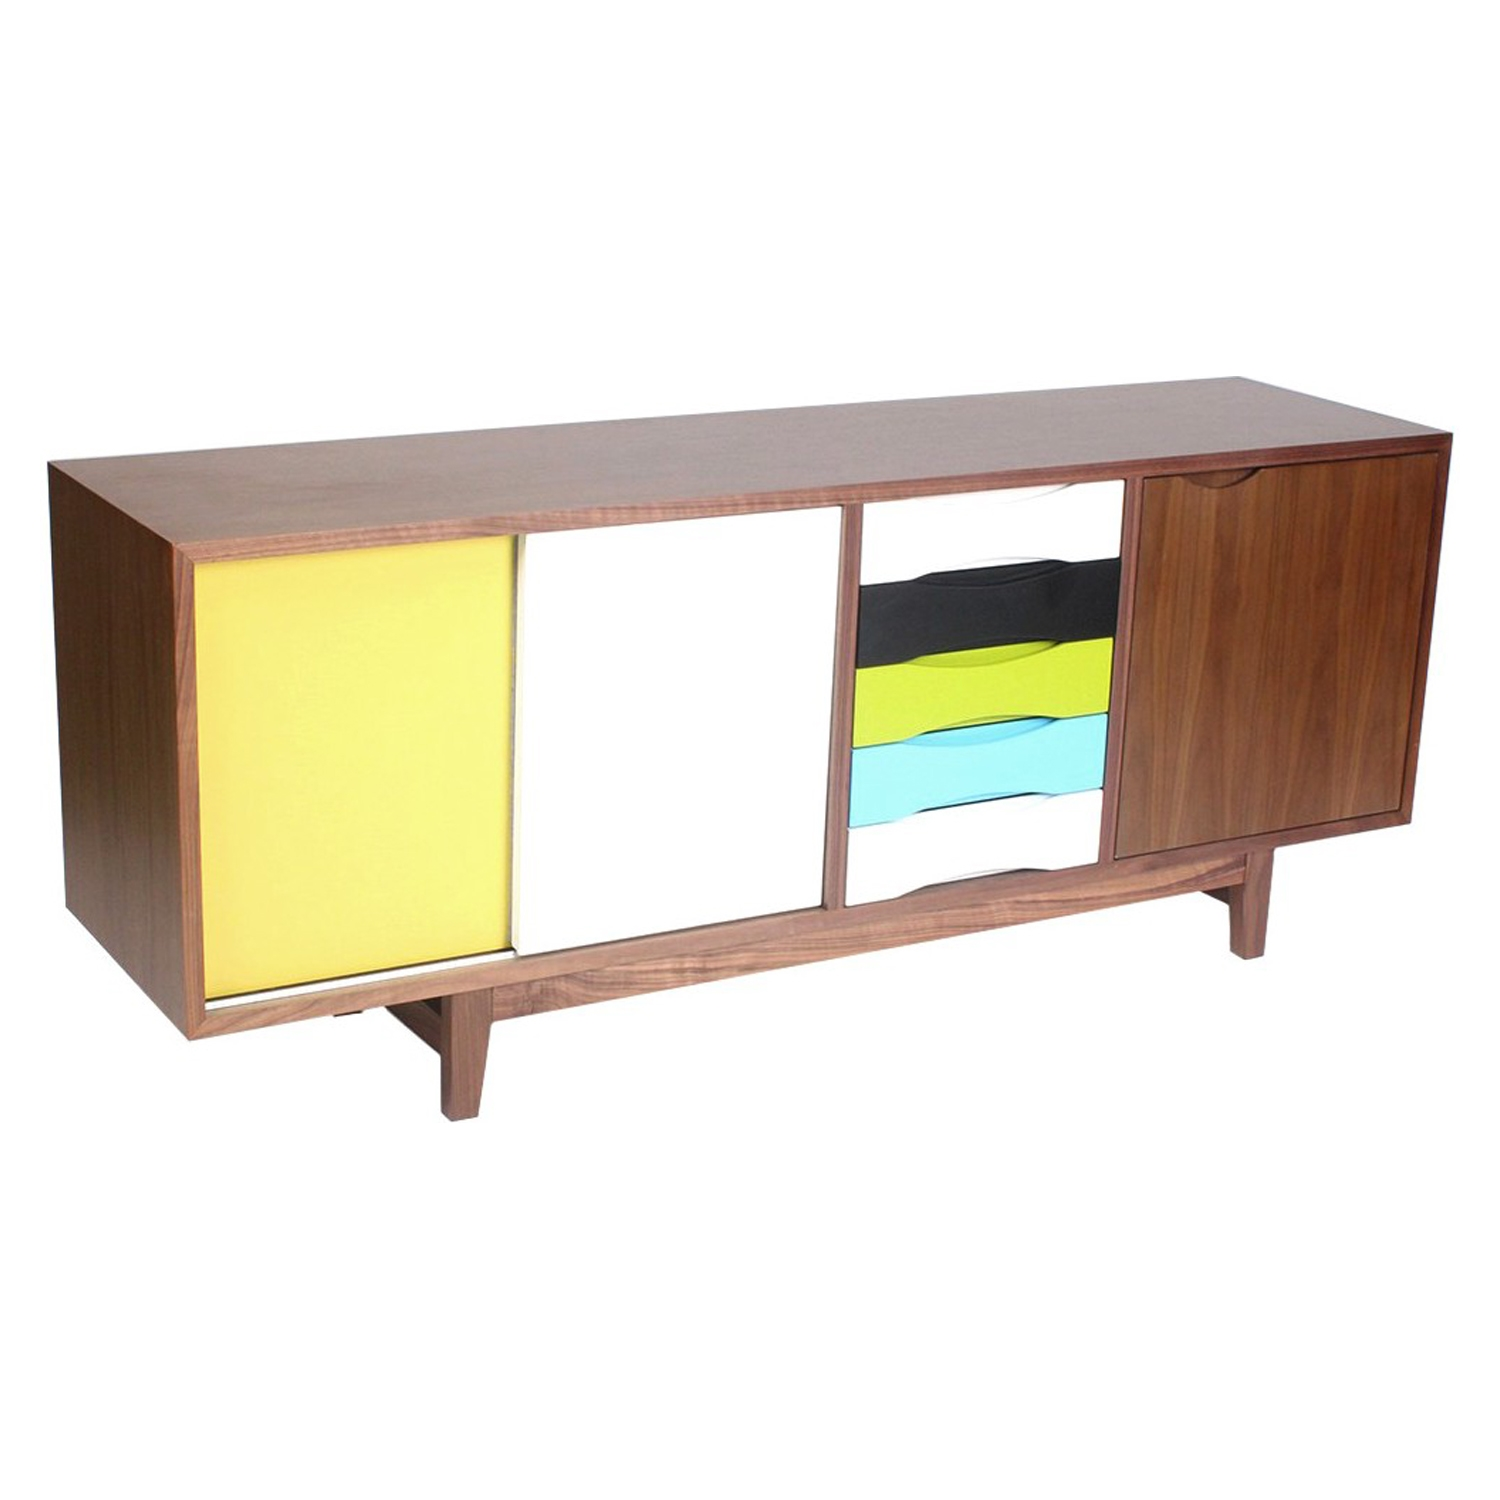 Kelda Sideboard - Walnut and Yellow